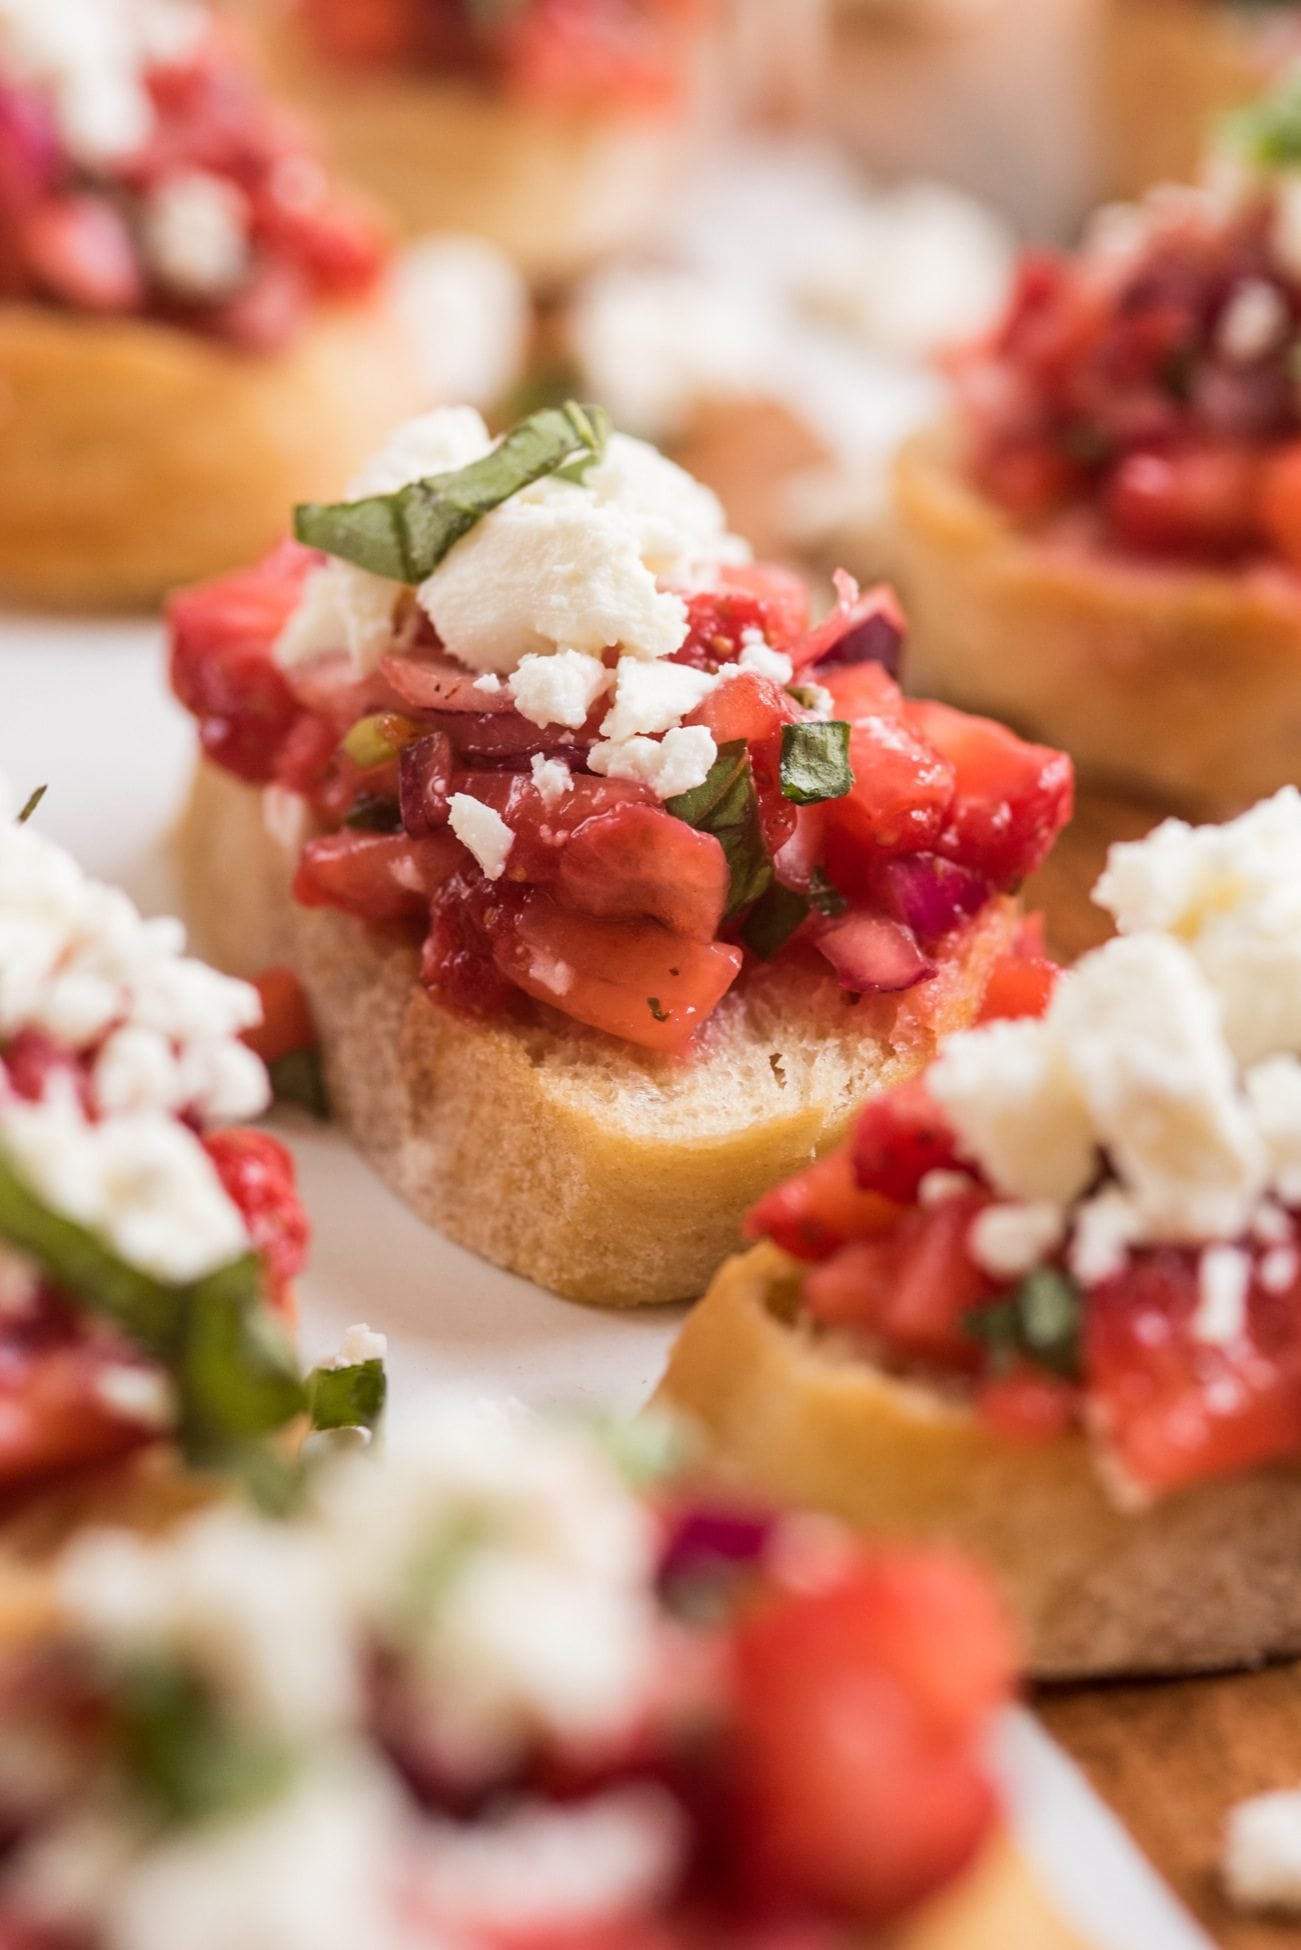 Strawberry Feta Bruschetta | 4th of July party ideas, 4th of July desserts and more from @cydconverse